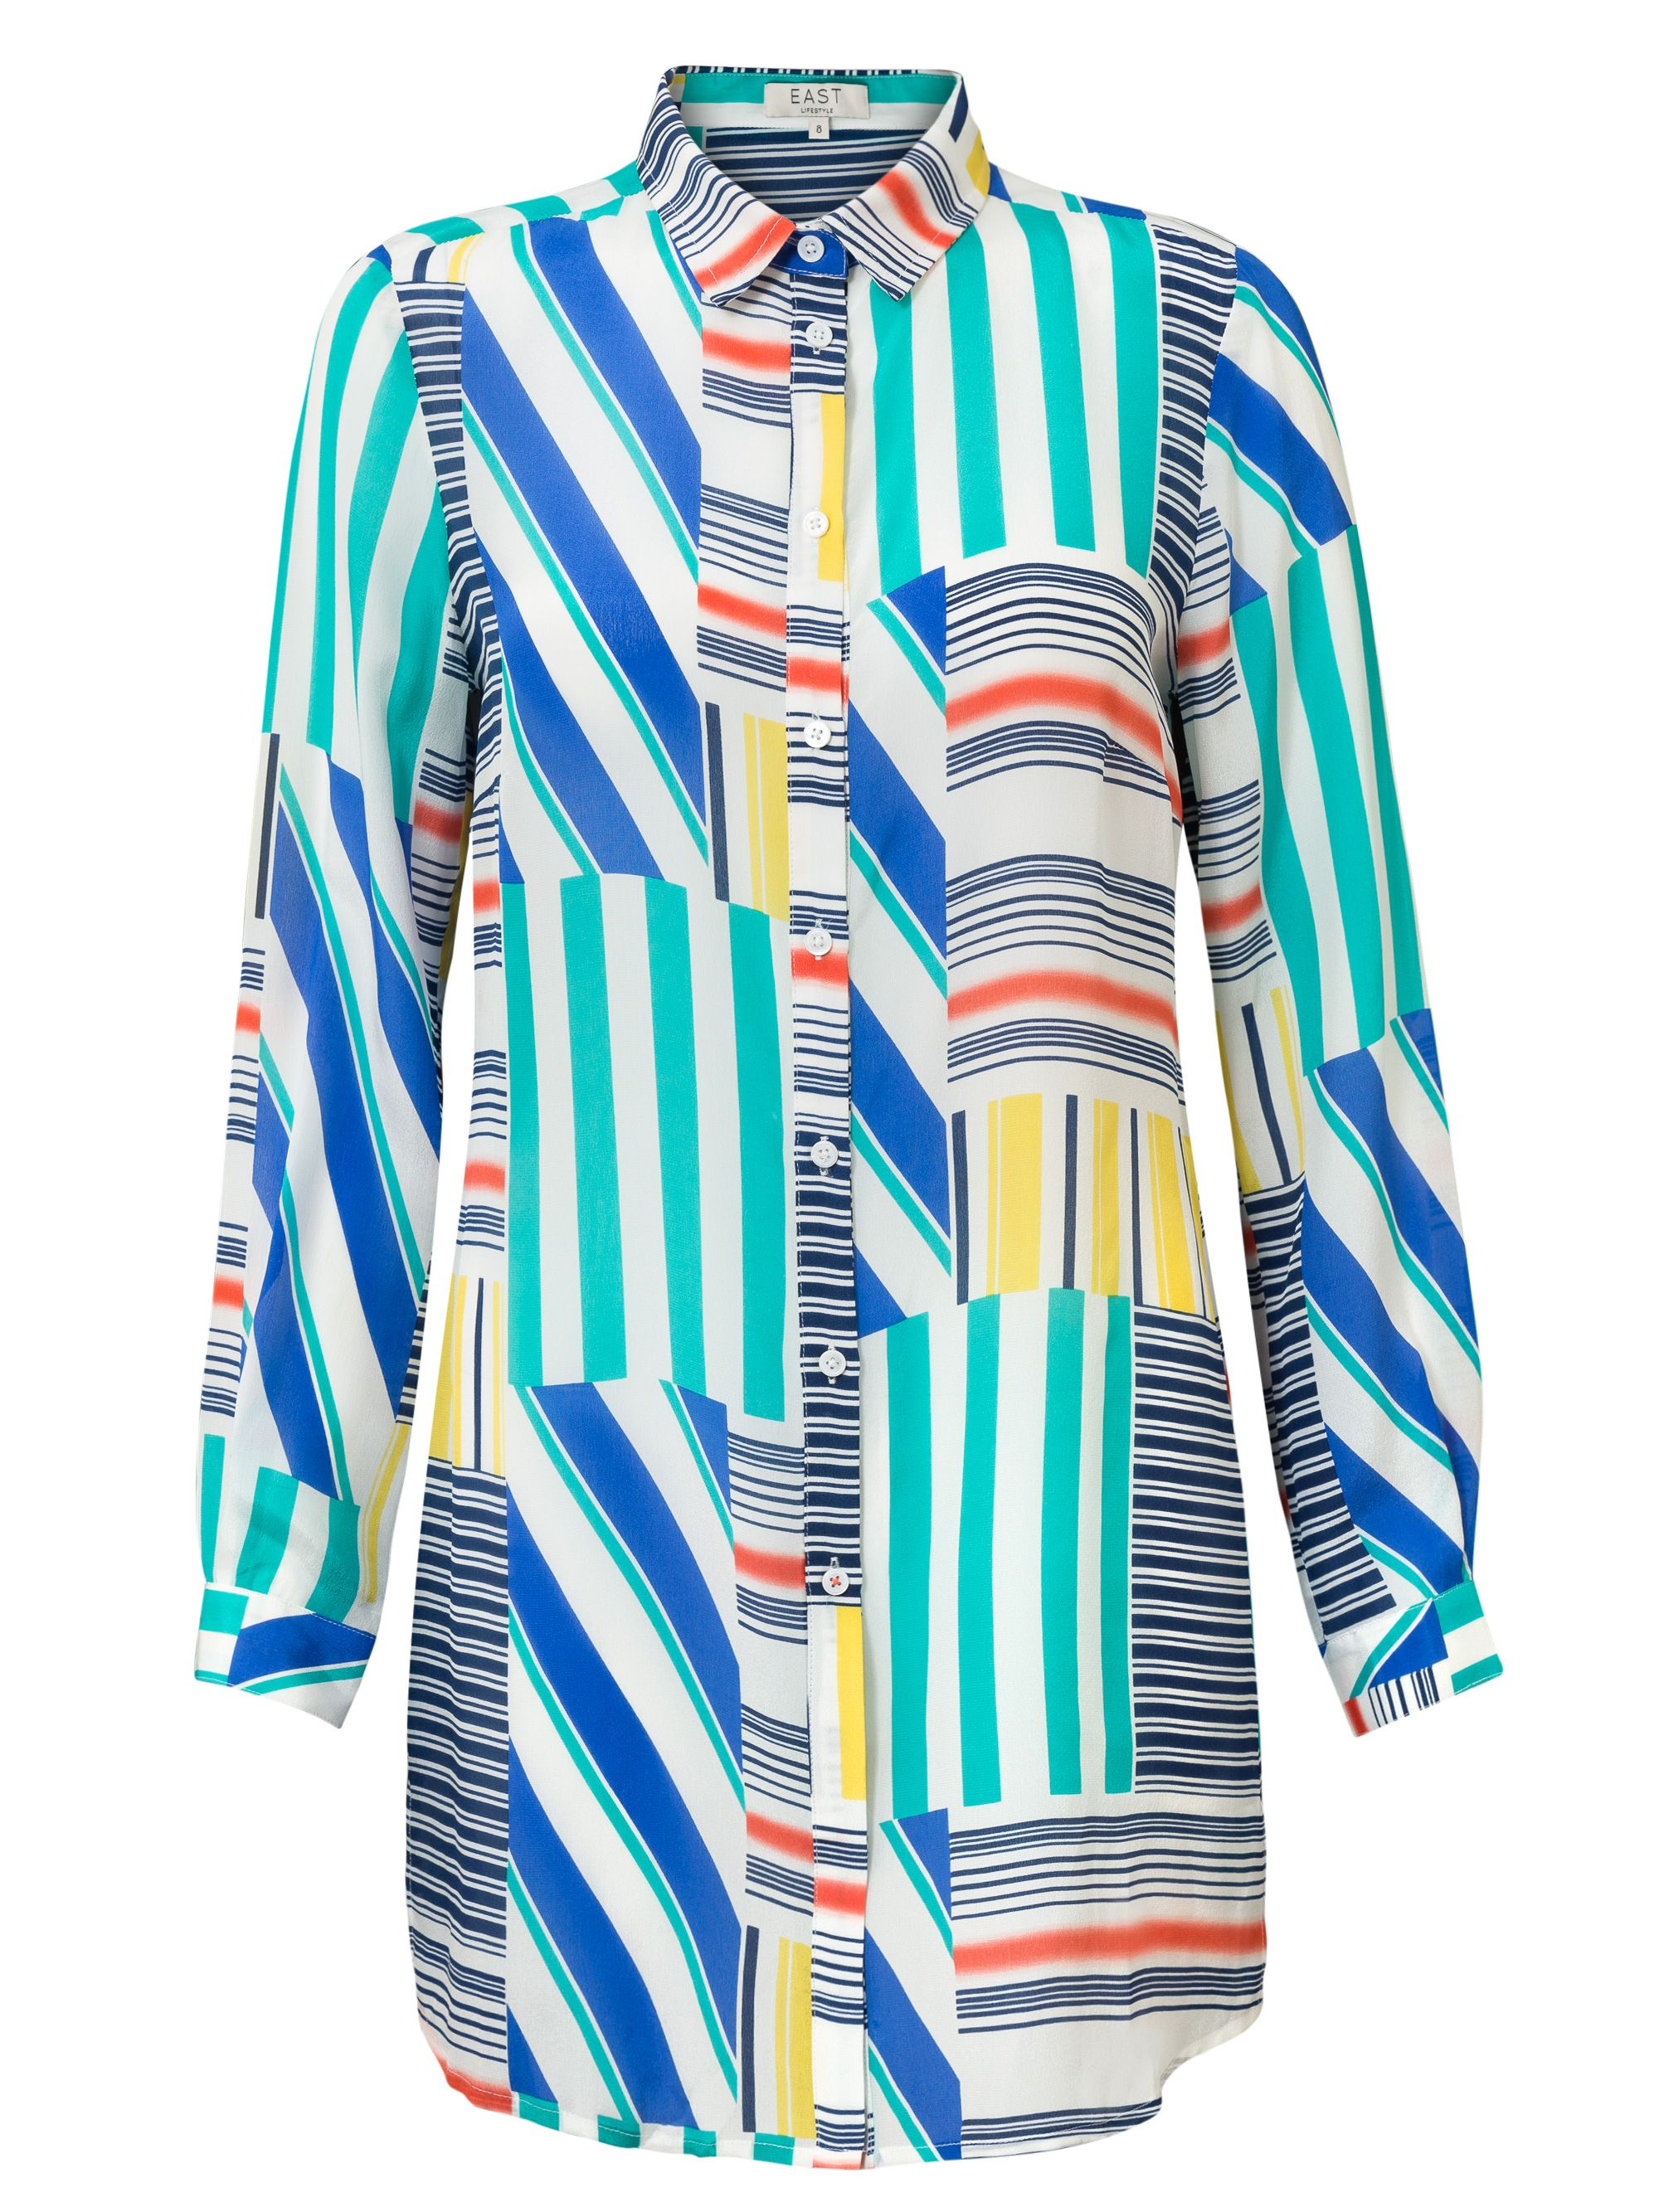 East Silk Martina Print Shirt, Multi-Coloured